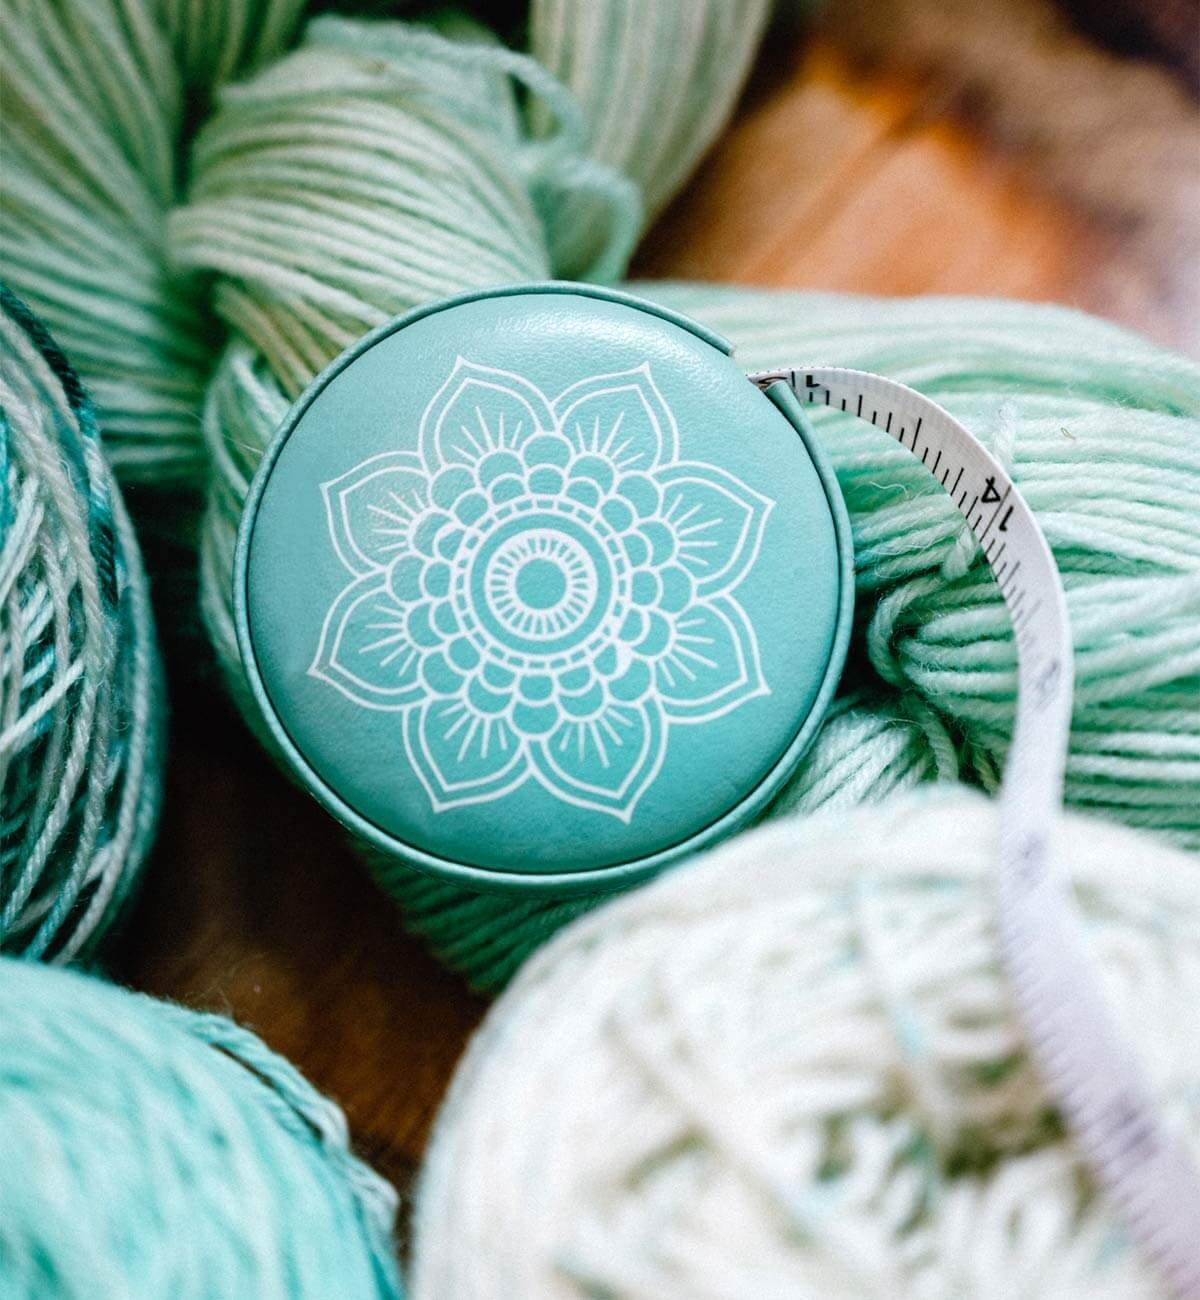 The Mindful Teal Tape Measure